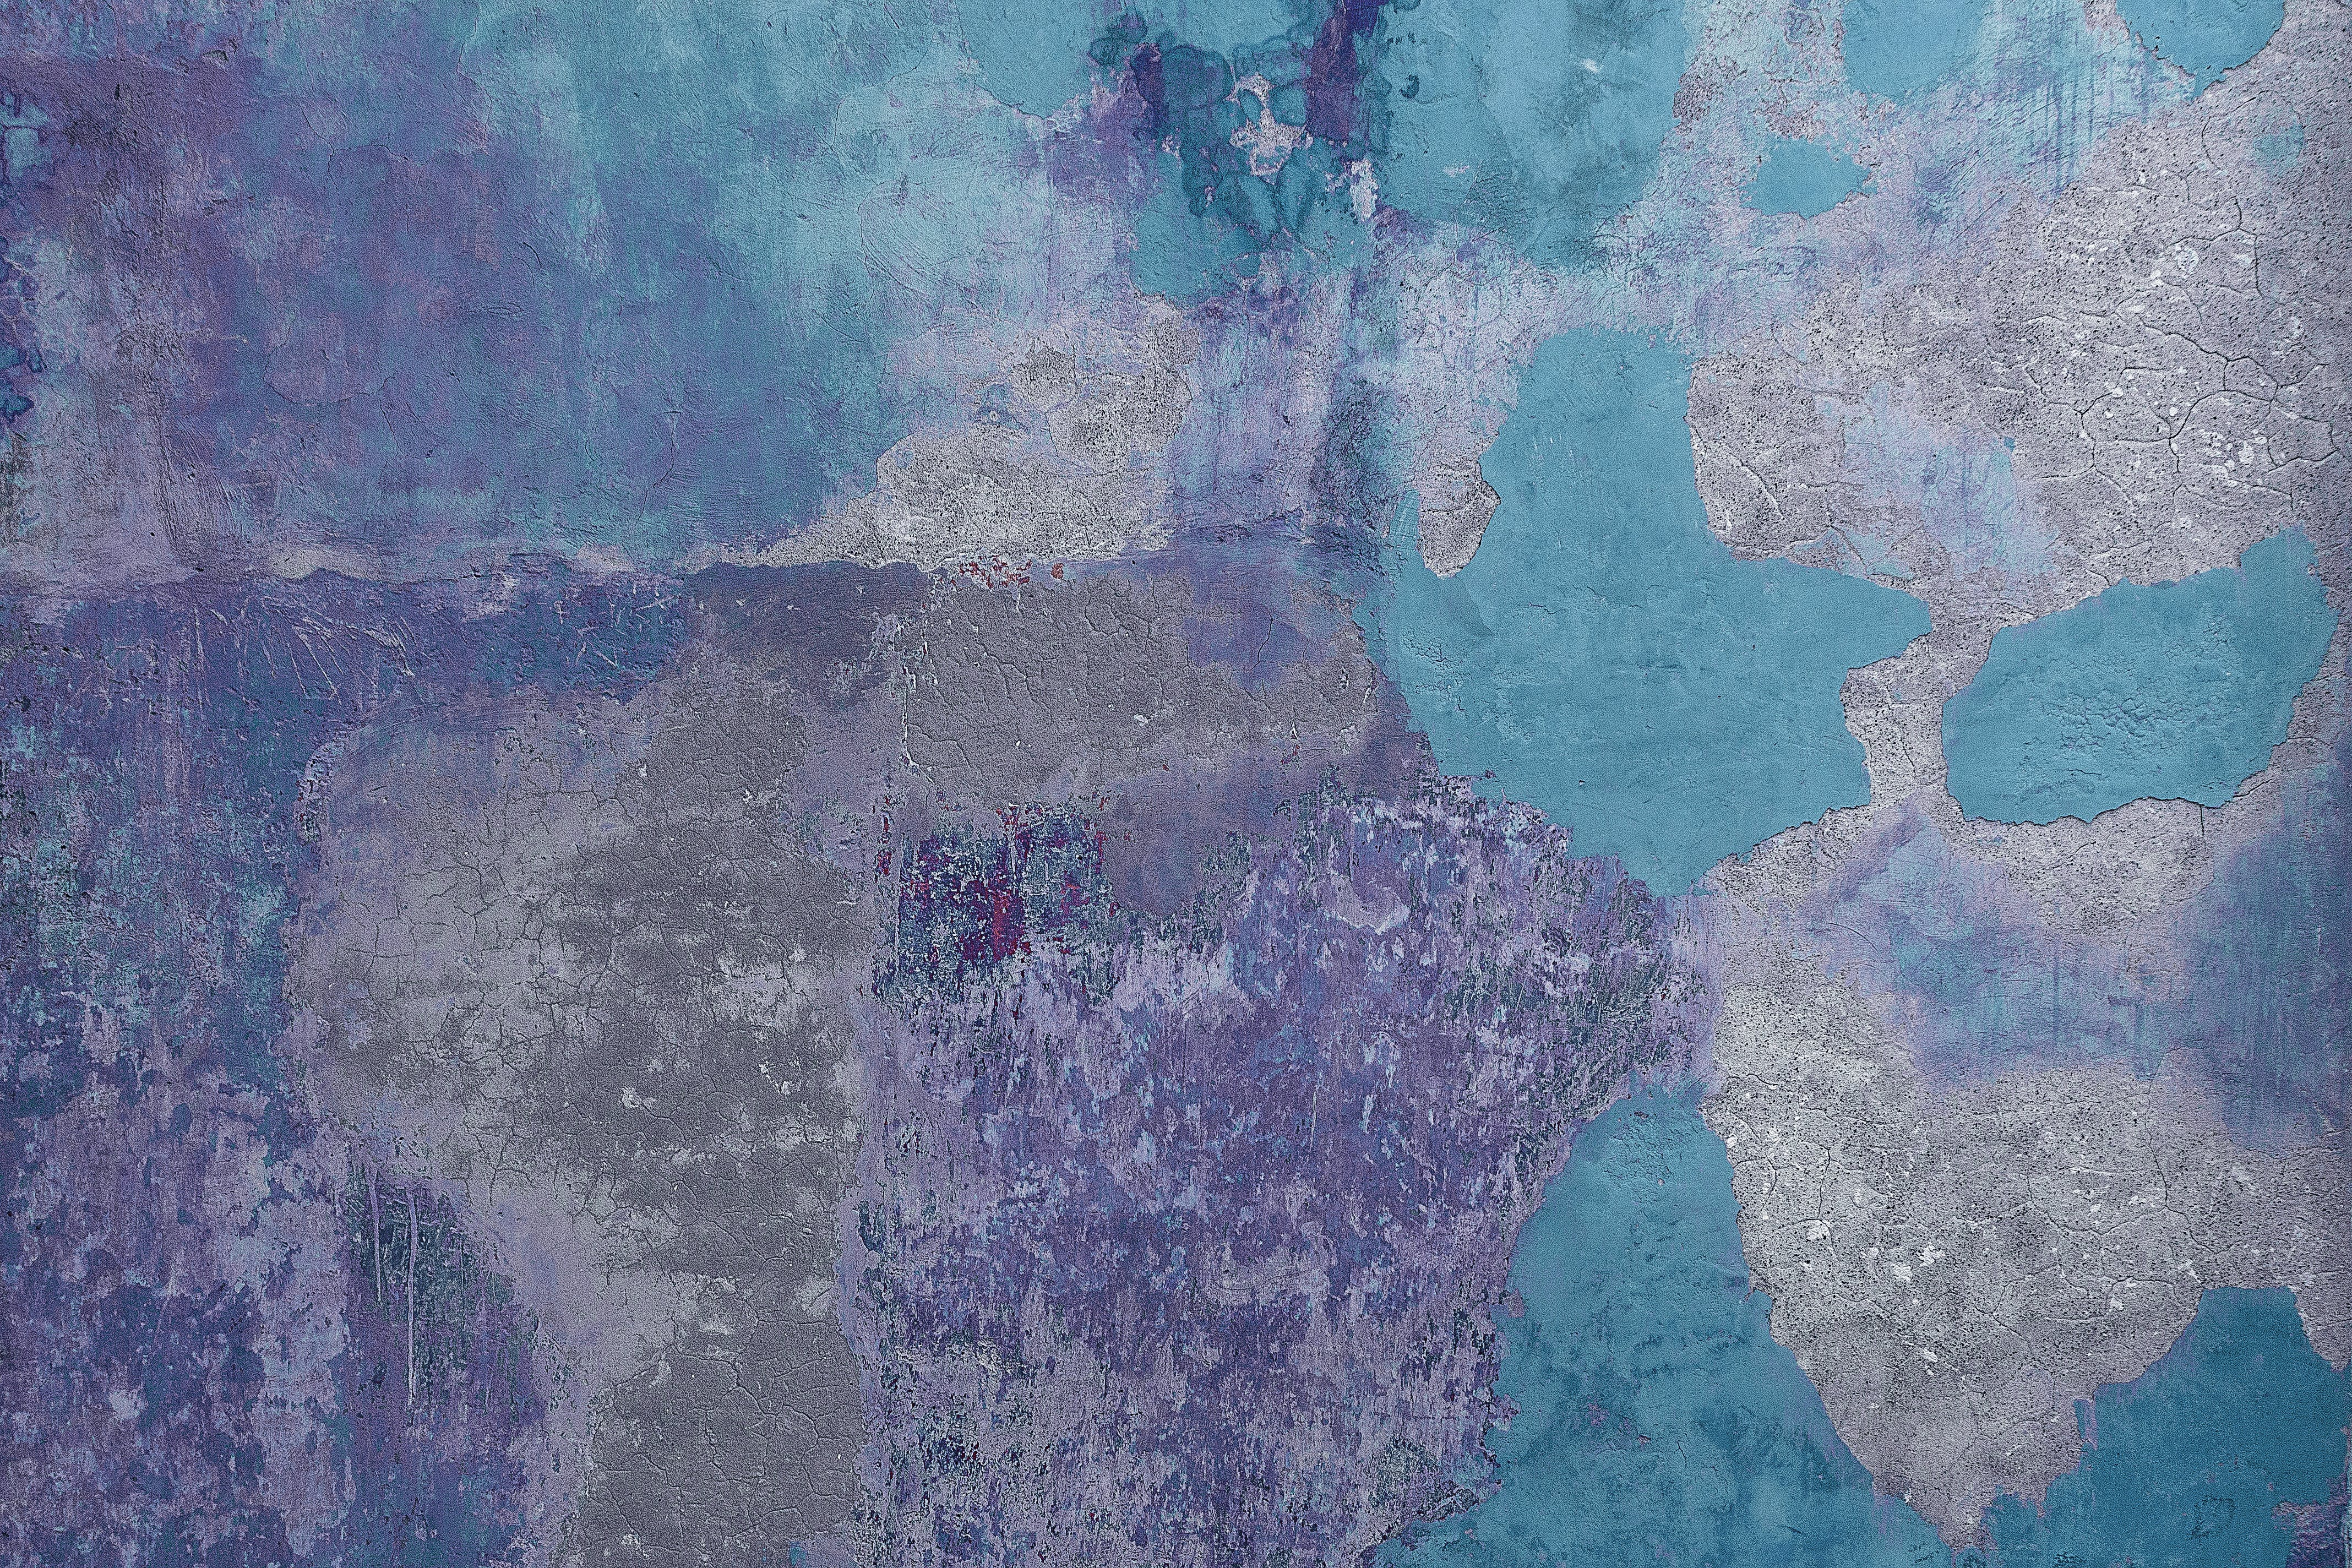 Free stock photo of abstract photo, background image, blue paint